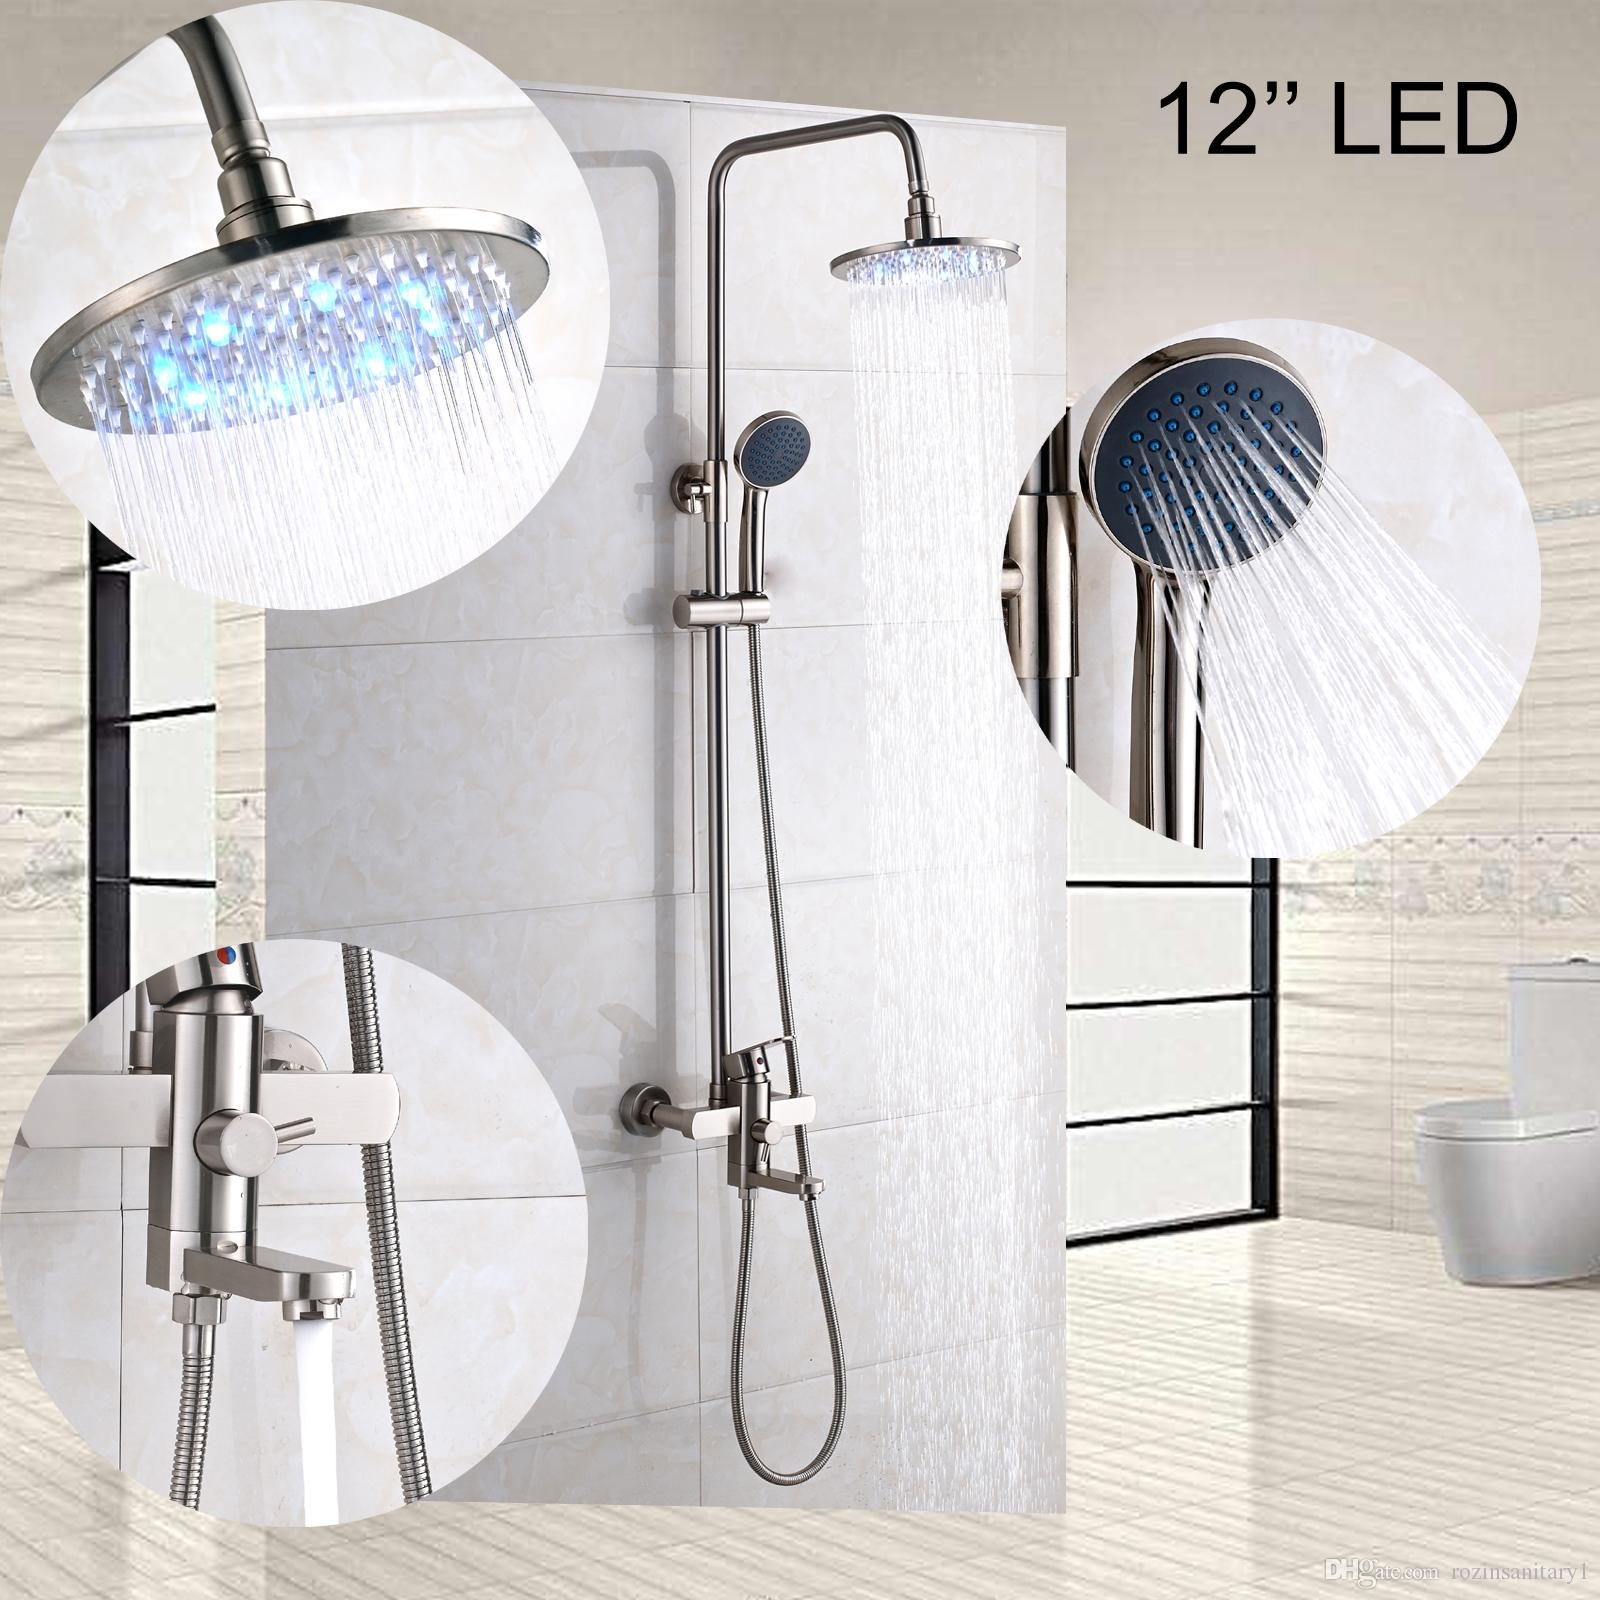 12 Inch Led Brushed Nickel Round Shower Head Faucet Set Wall Mounted Tub Spout Tap Three Functions